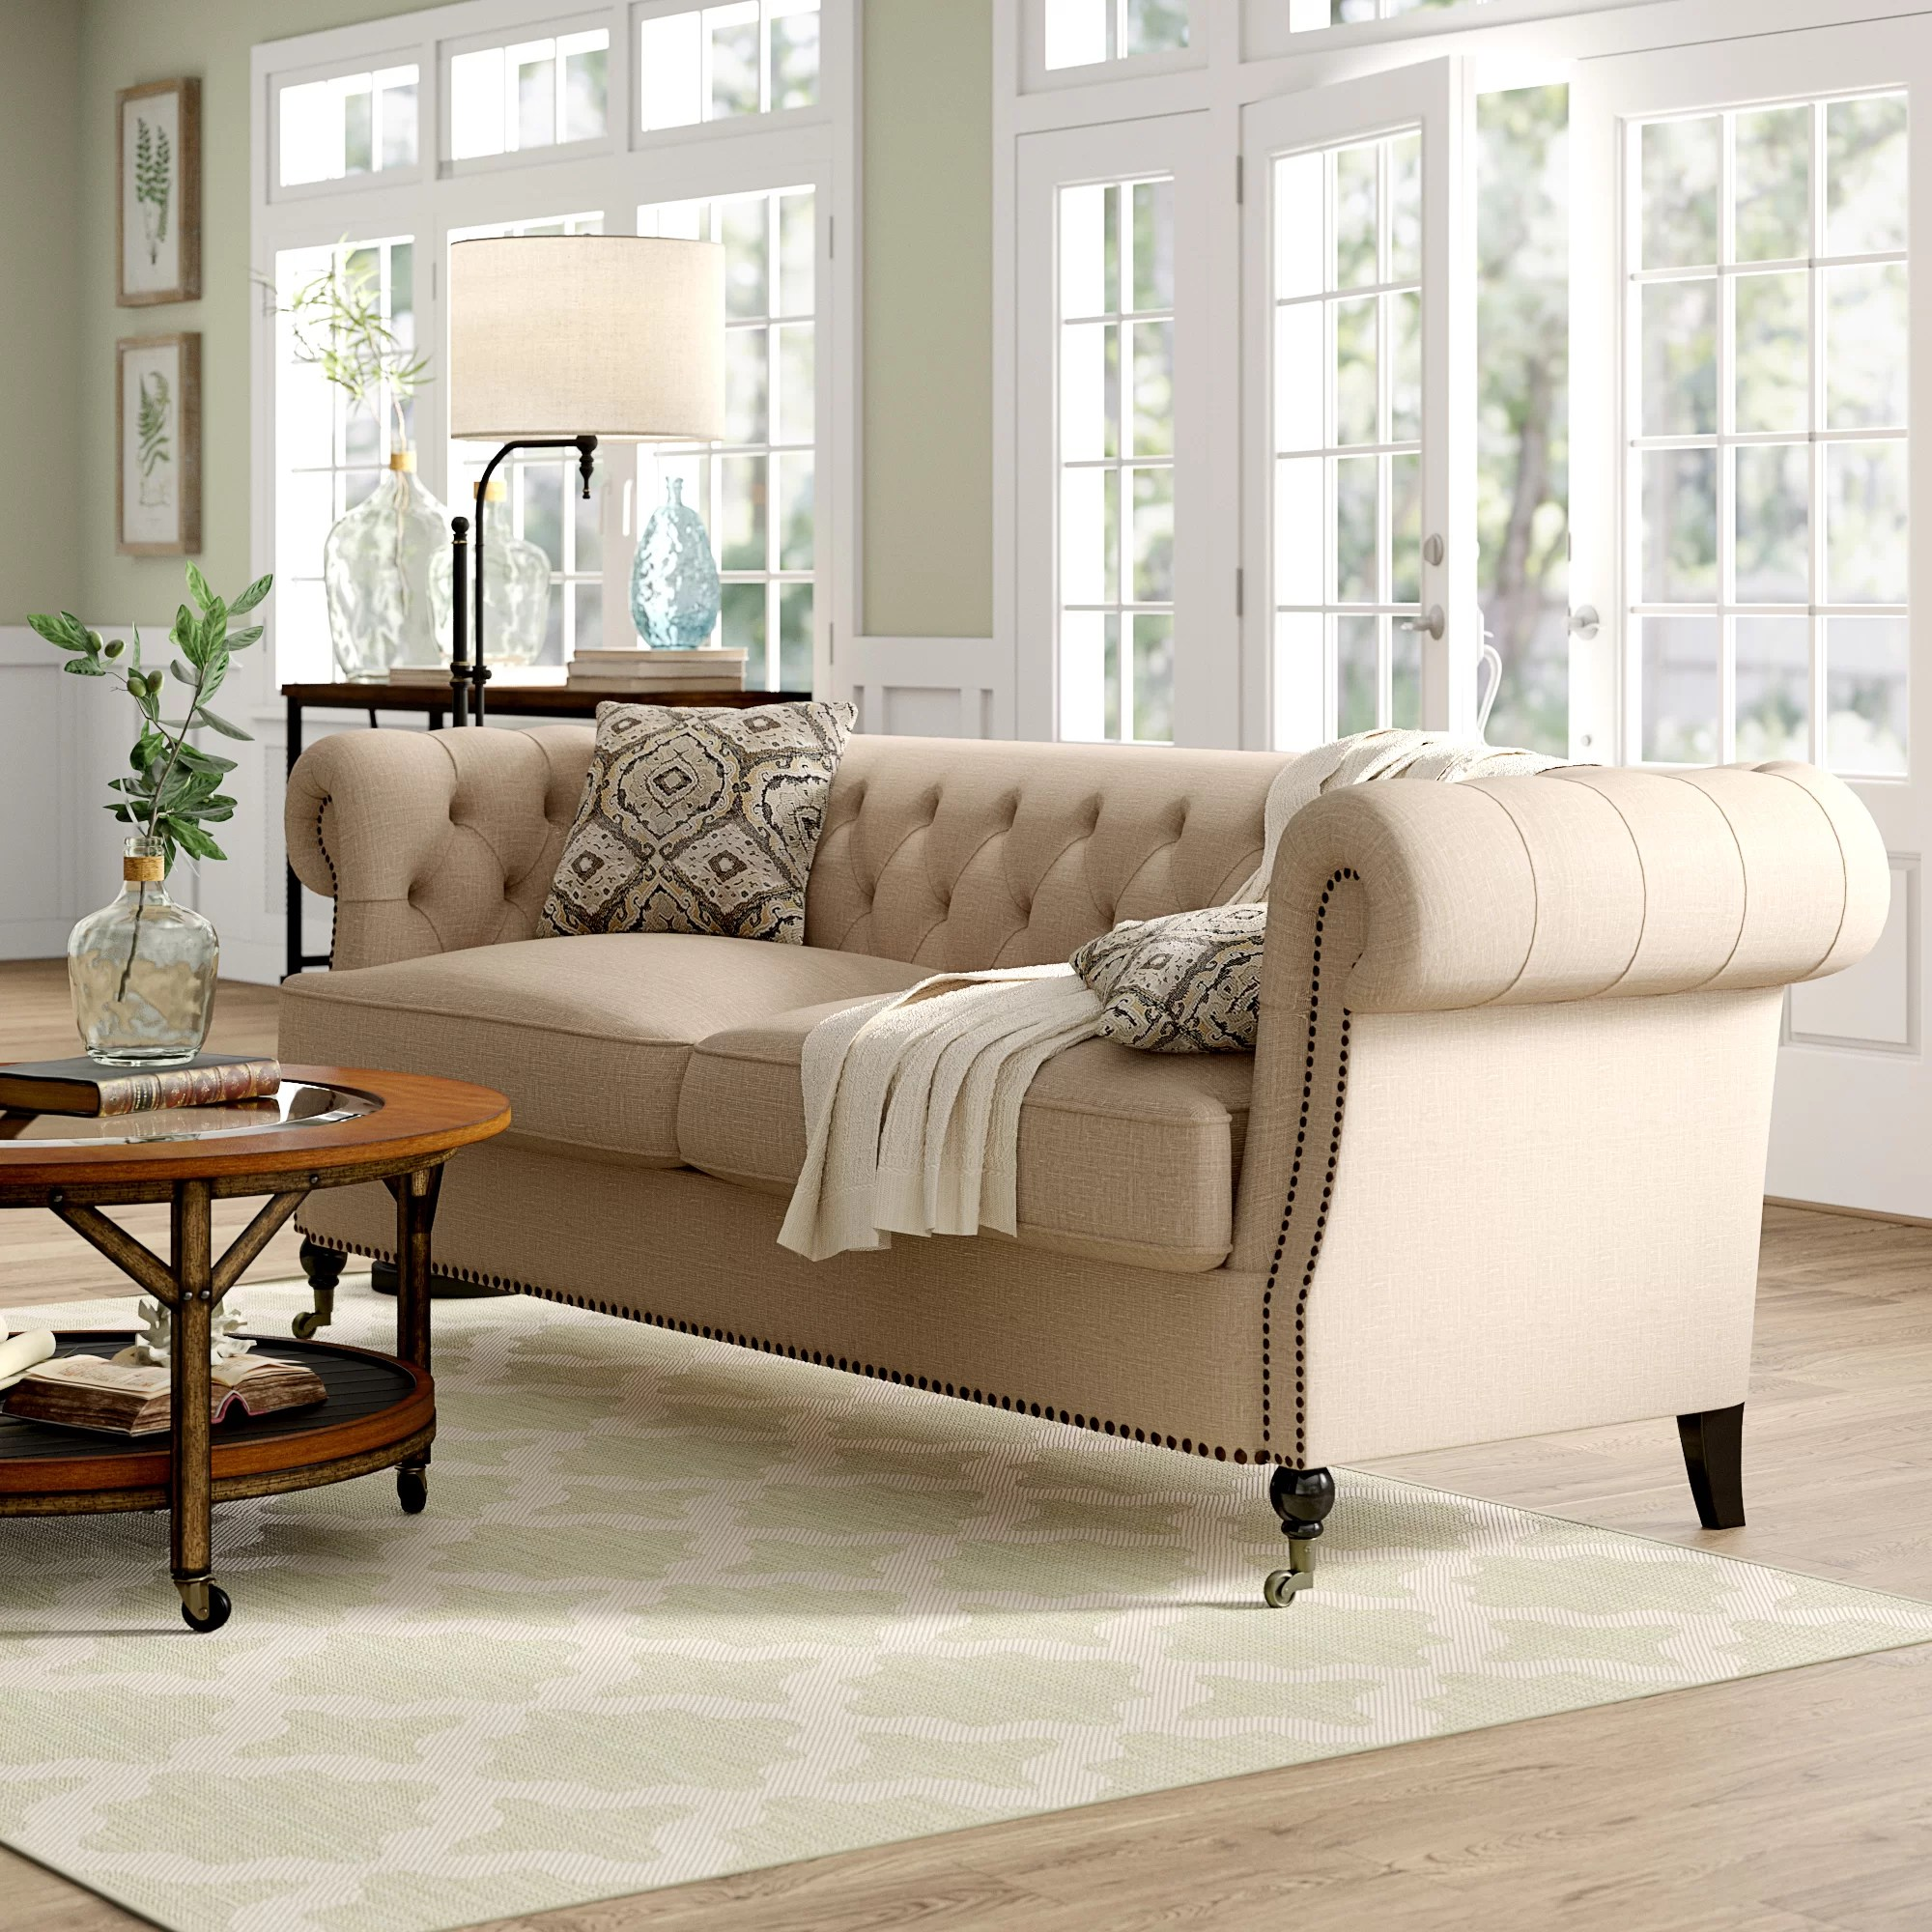 Sofa In Chesterfield Look Calila Chesterfield Sofa